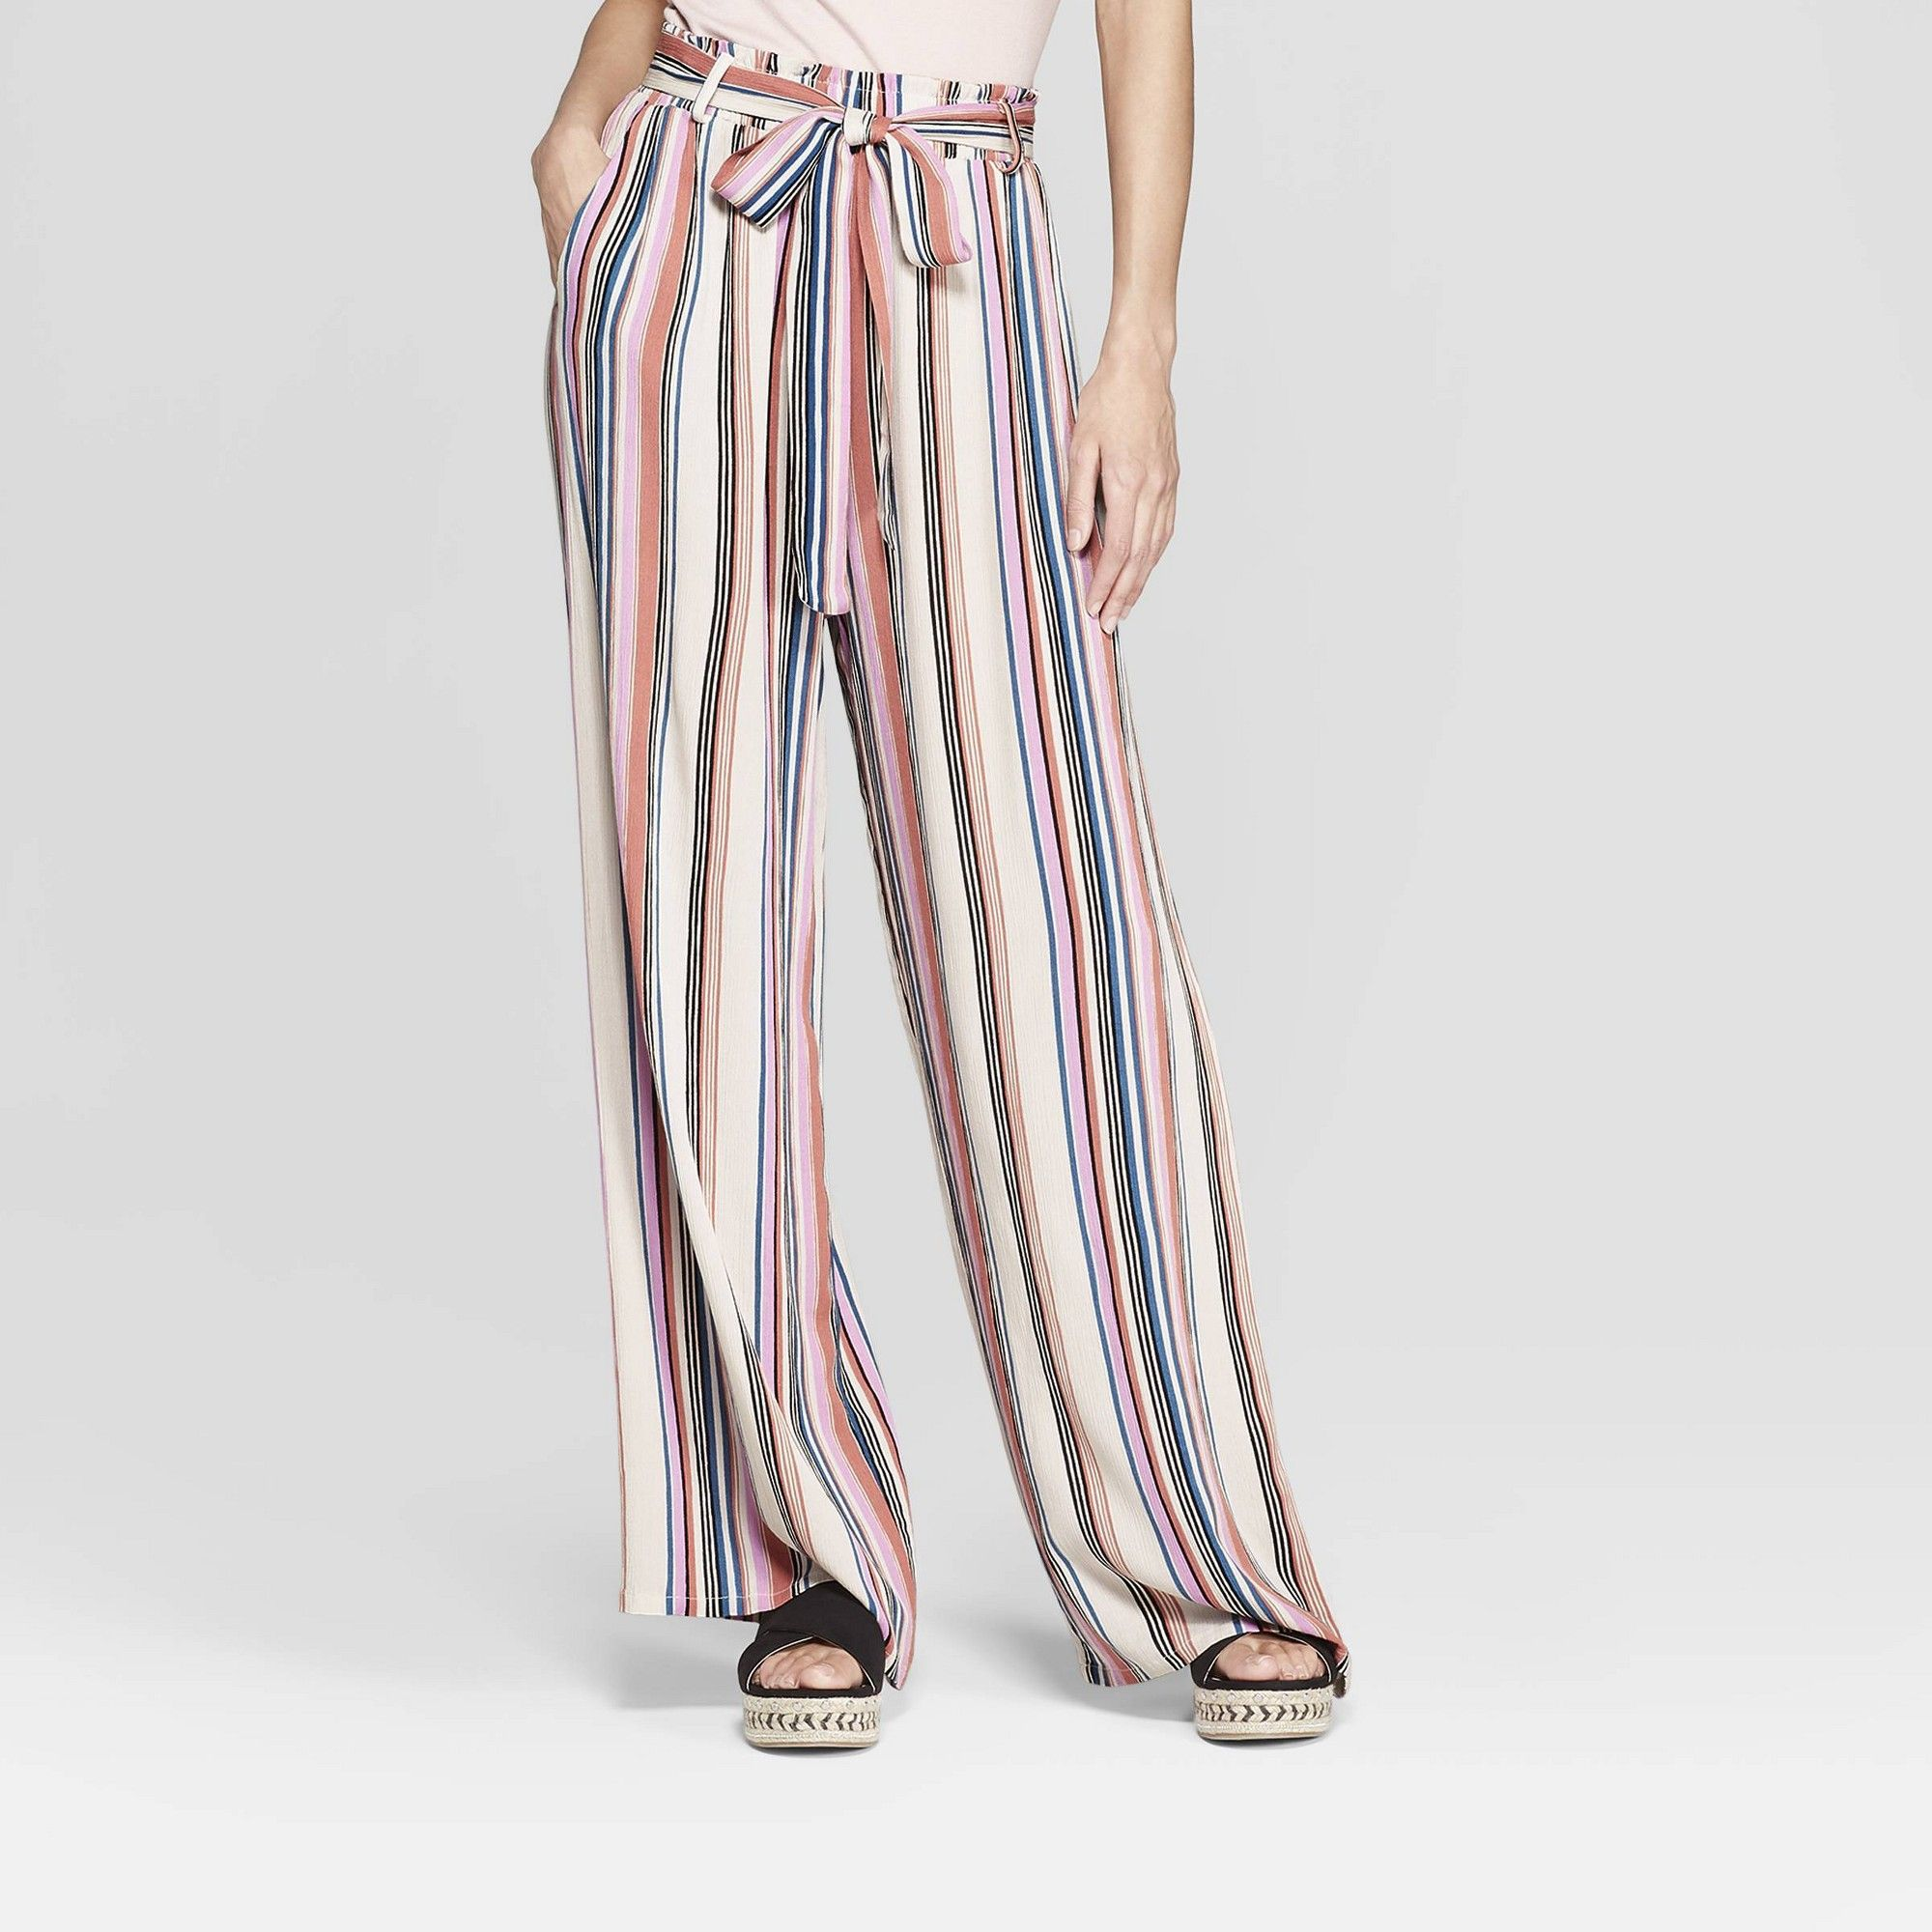 Women/'s open wide Stretchy fitting Palazzo Pants front waist tying laces